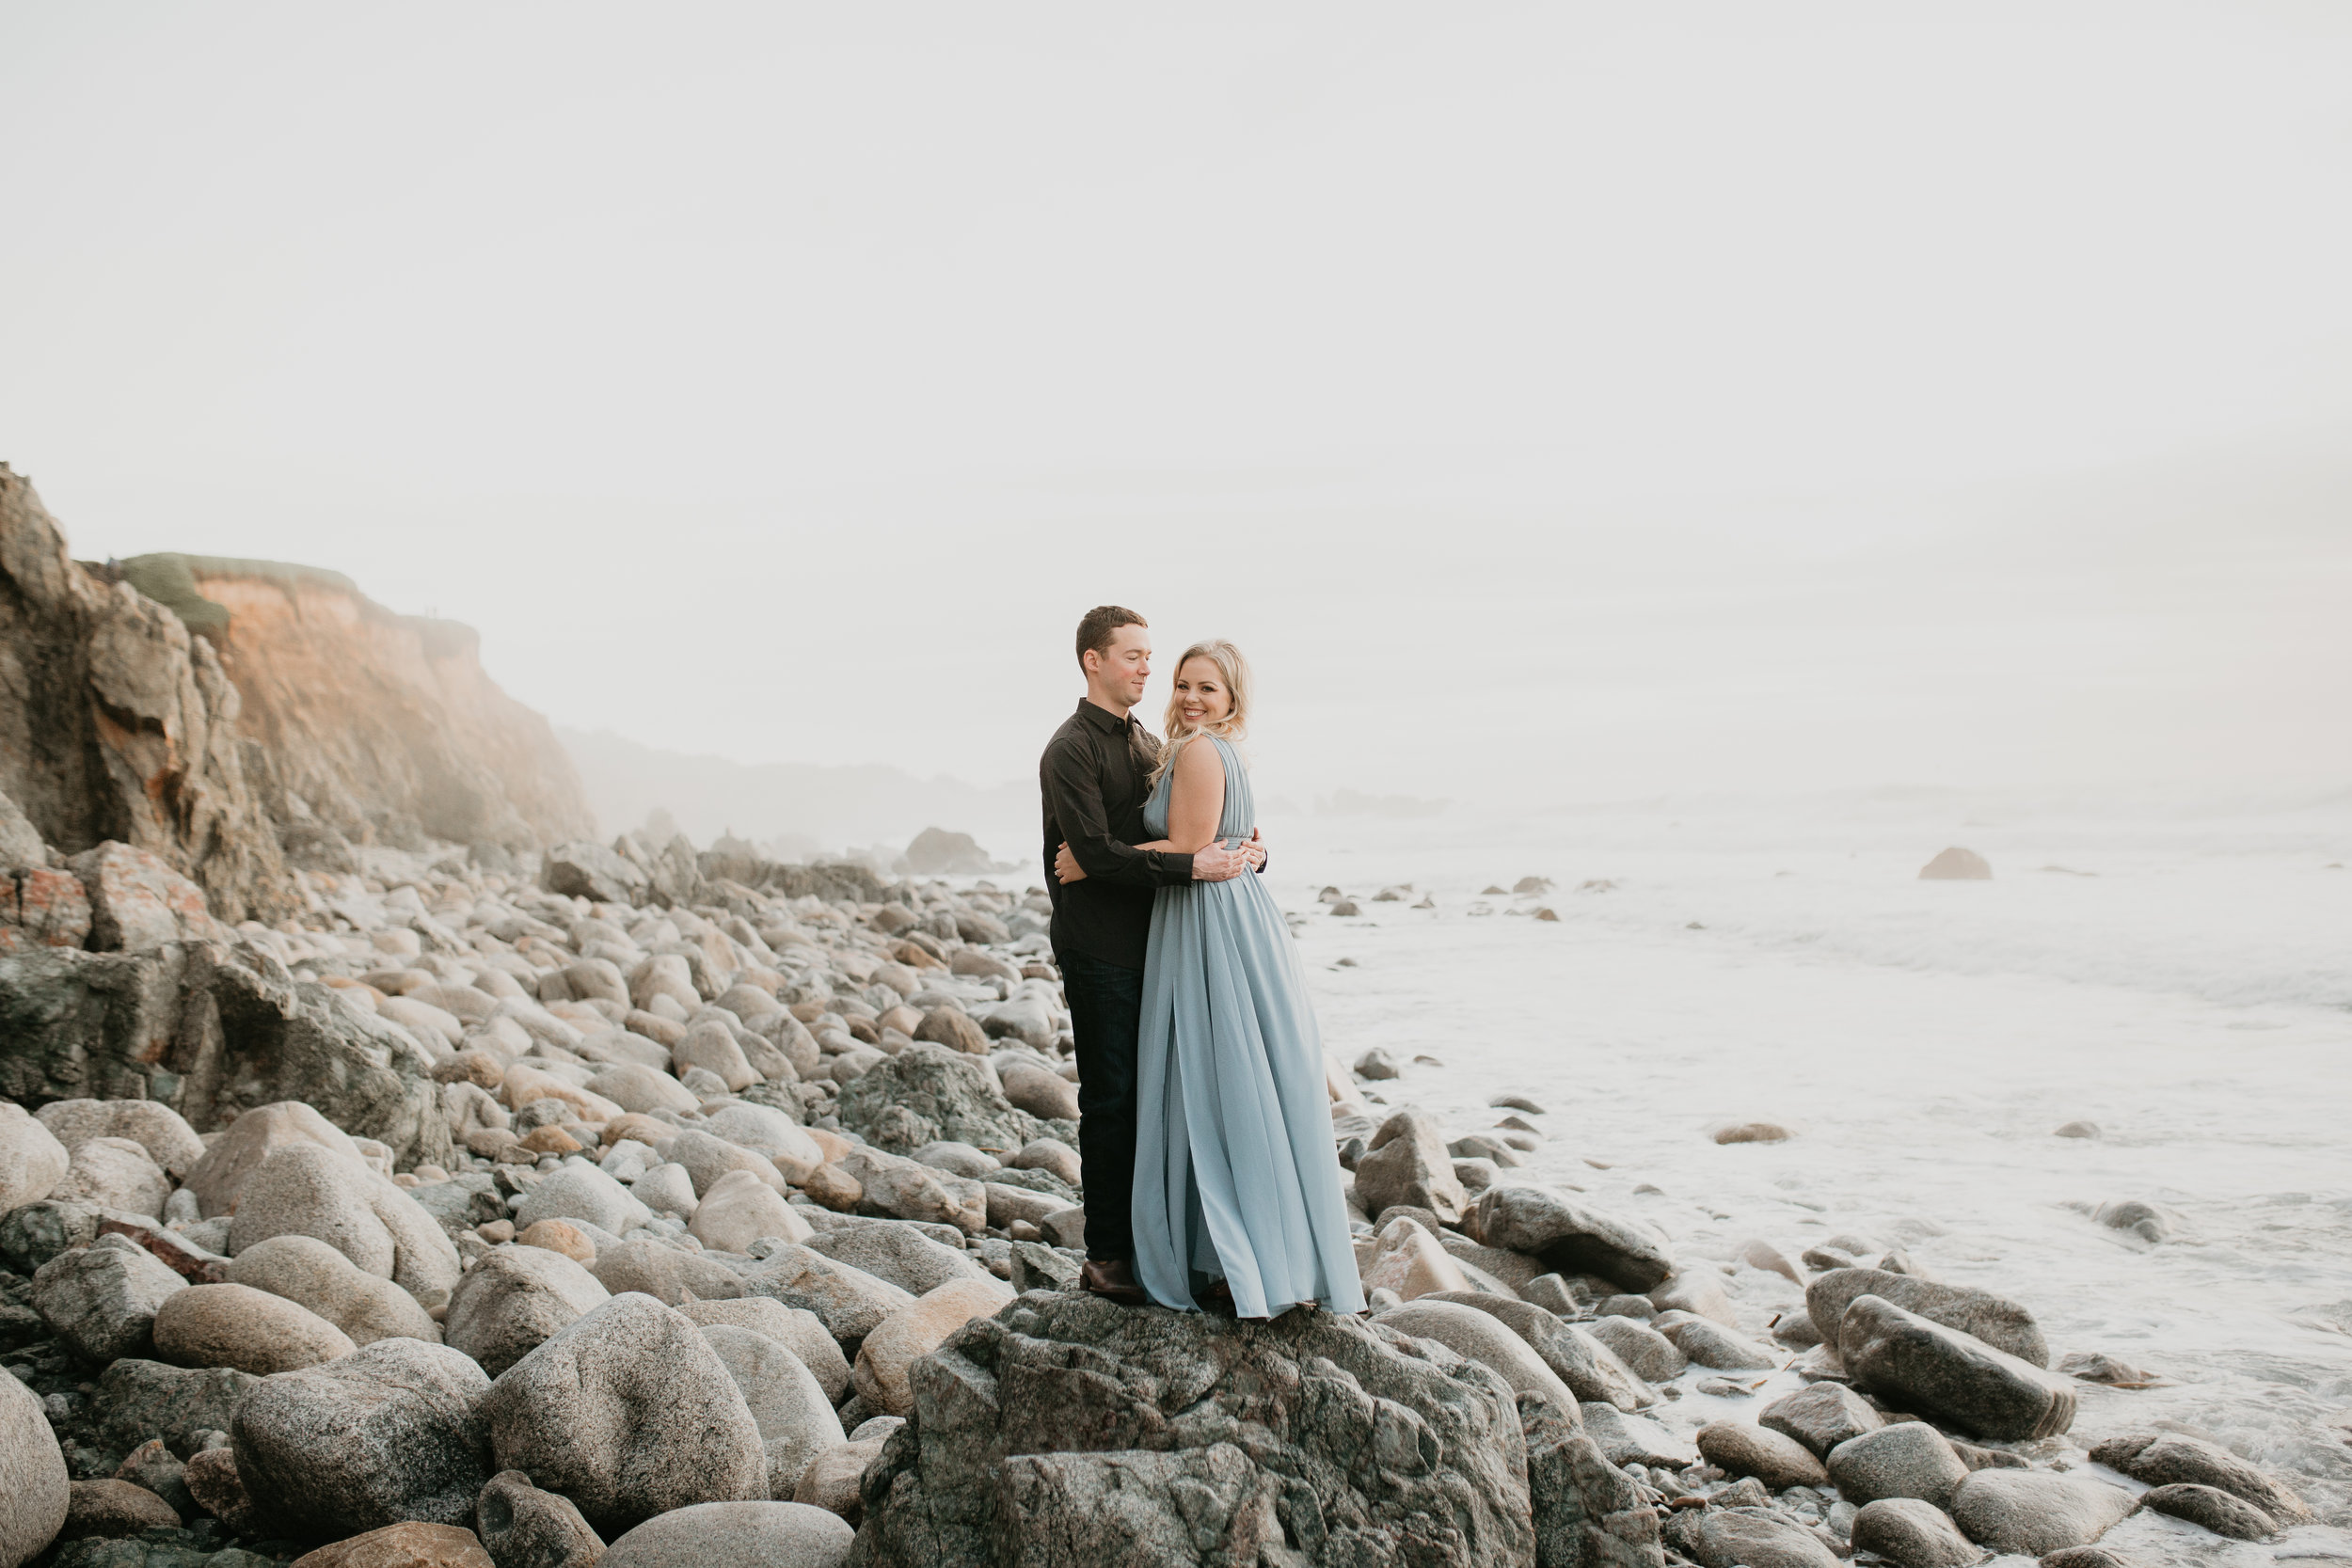 Nicole-Daacke-Photography-big-sur-garrapatta-state-park-adventurous-engagement-session-bixy-bridge-elopement-big-sur-wedding-photographer-monterey-elopement-photographer-california-golden-sunset-coast-photos-45.jpg